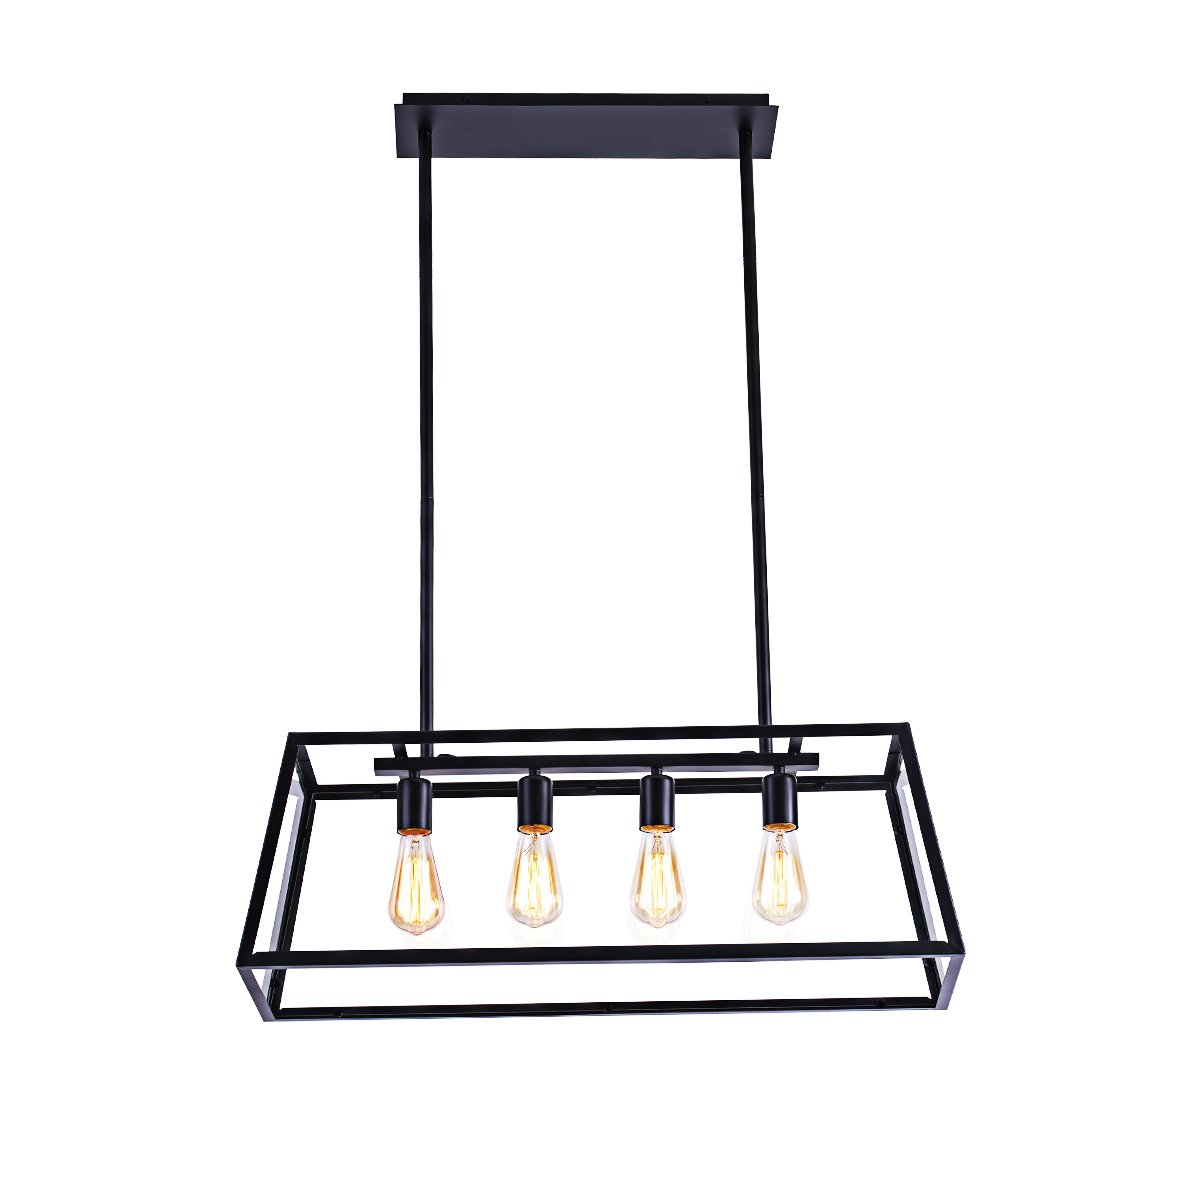 Morley Glass Linear Chandelier, 4-Light Industrial Island Pendant Lighting with Matte Black Frame for Dining Room, Kitchen by Lanros